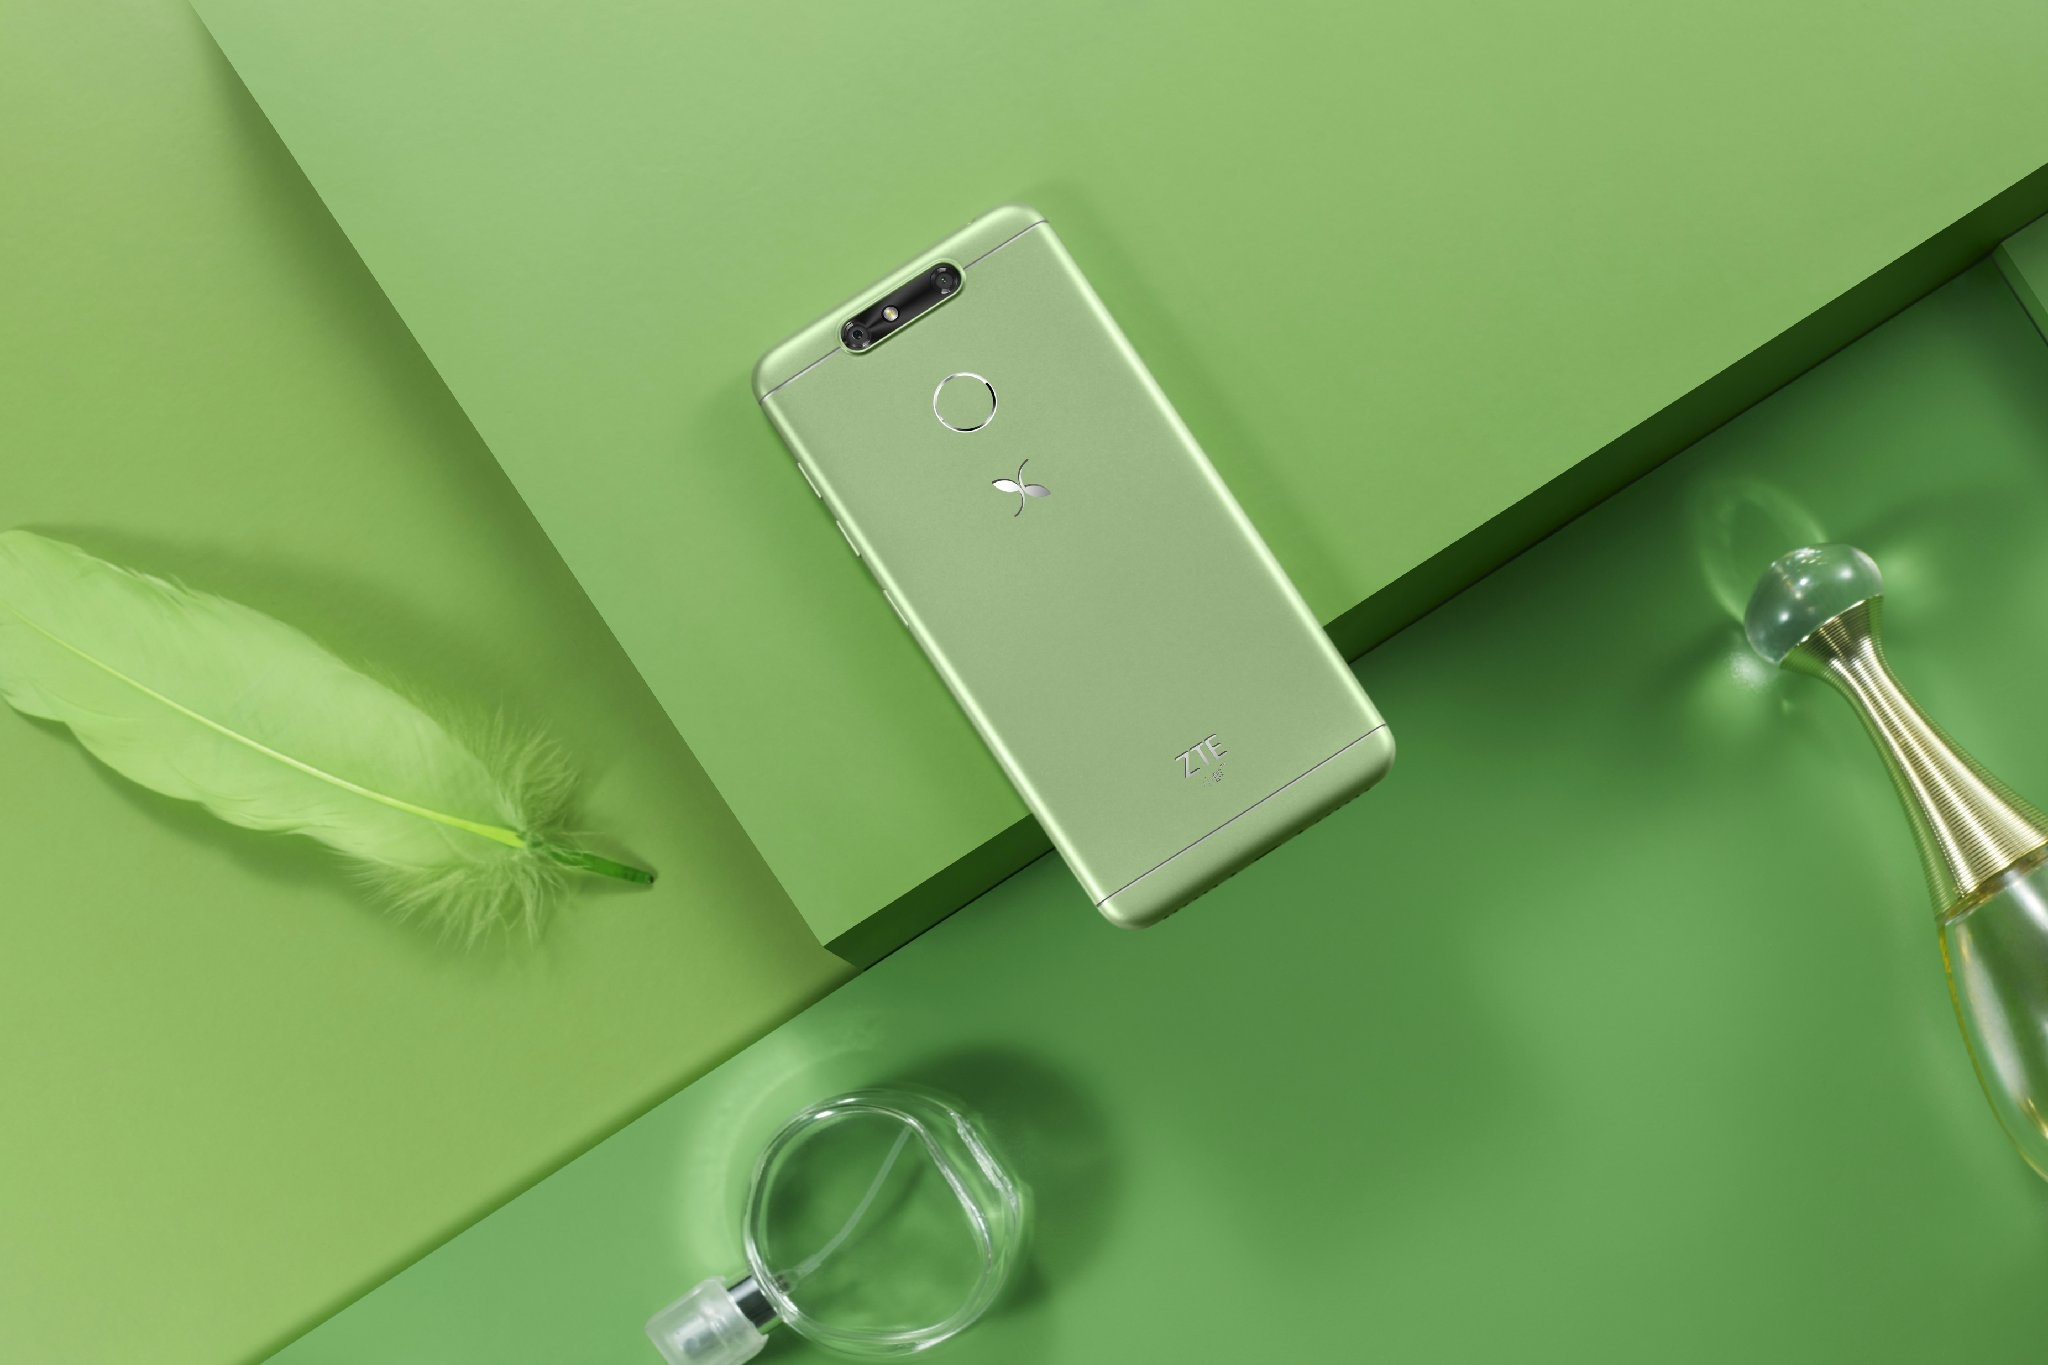 Zte Small Fresh 5 Πρεμιέρα με Dual Camera, οθόνη 5 ιντσών